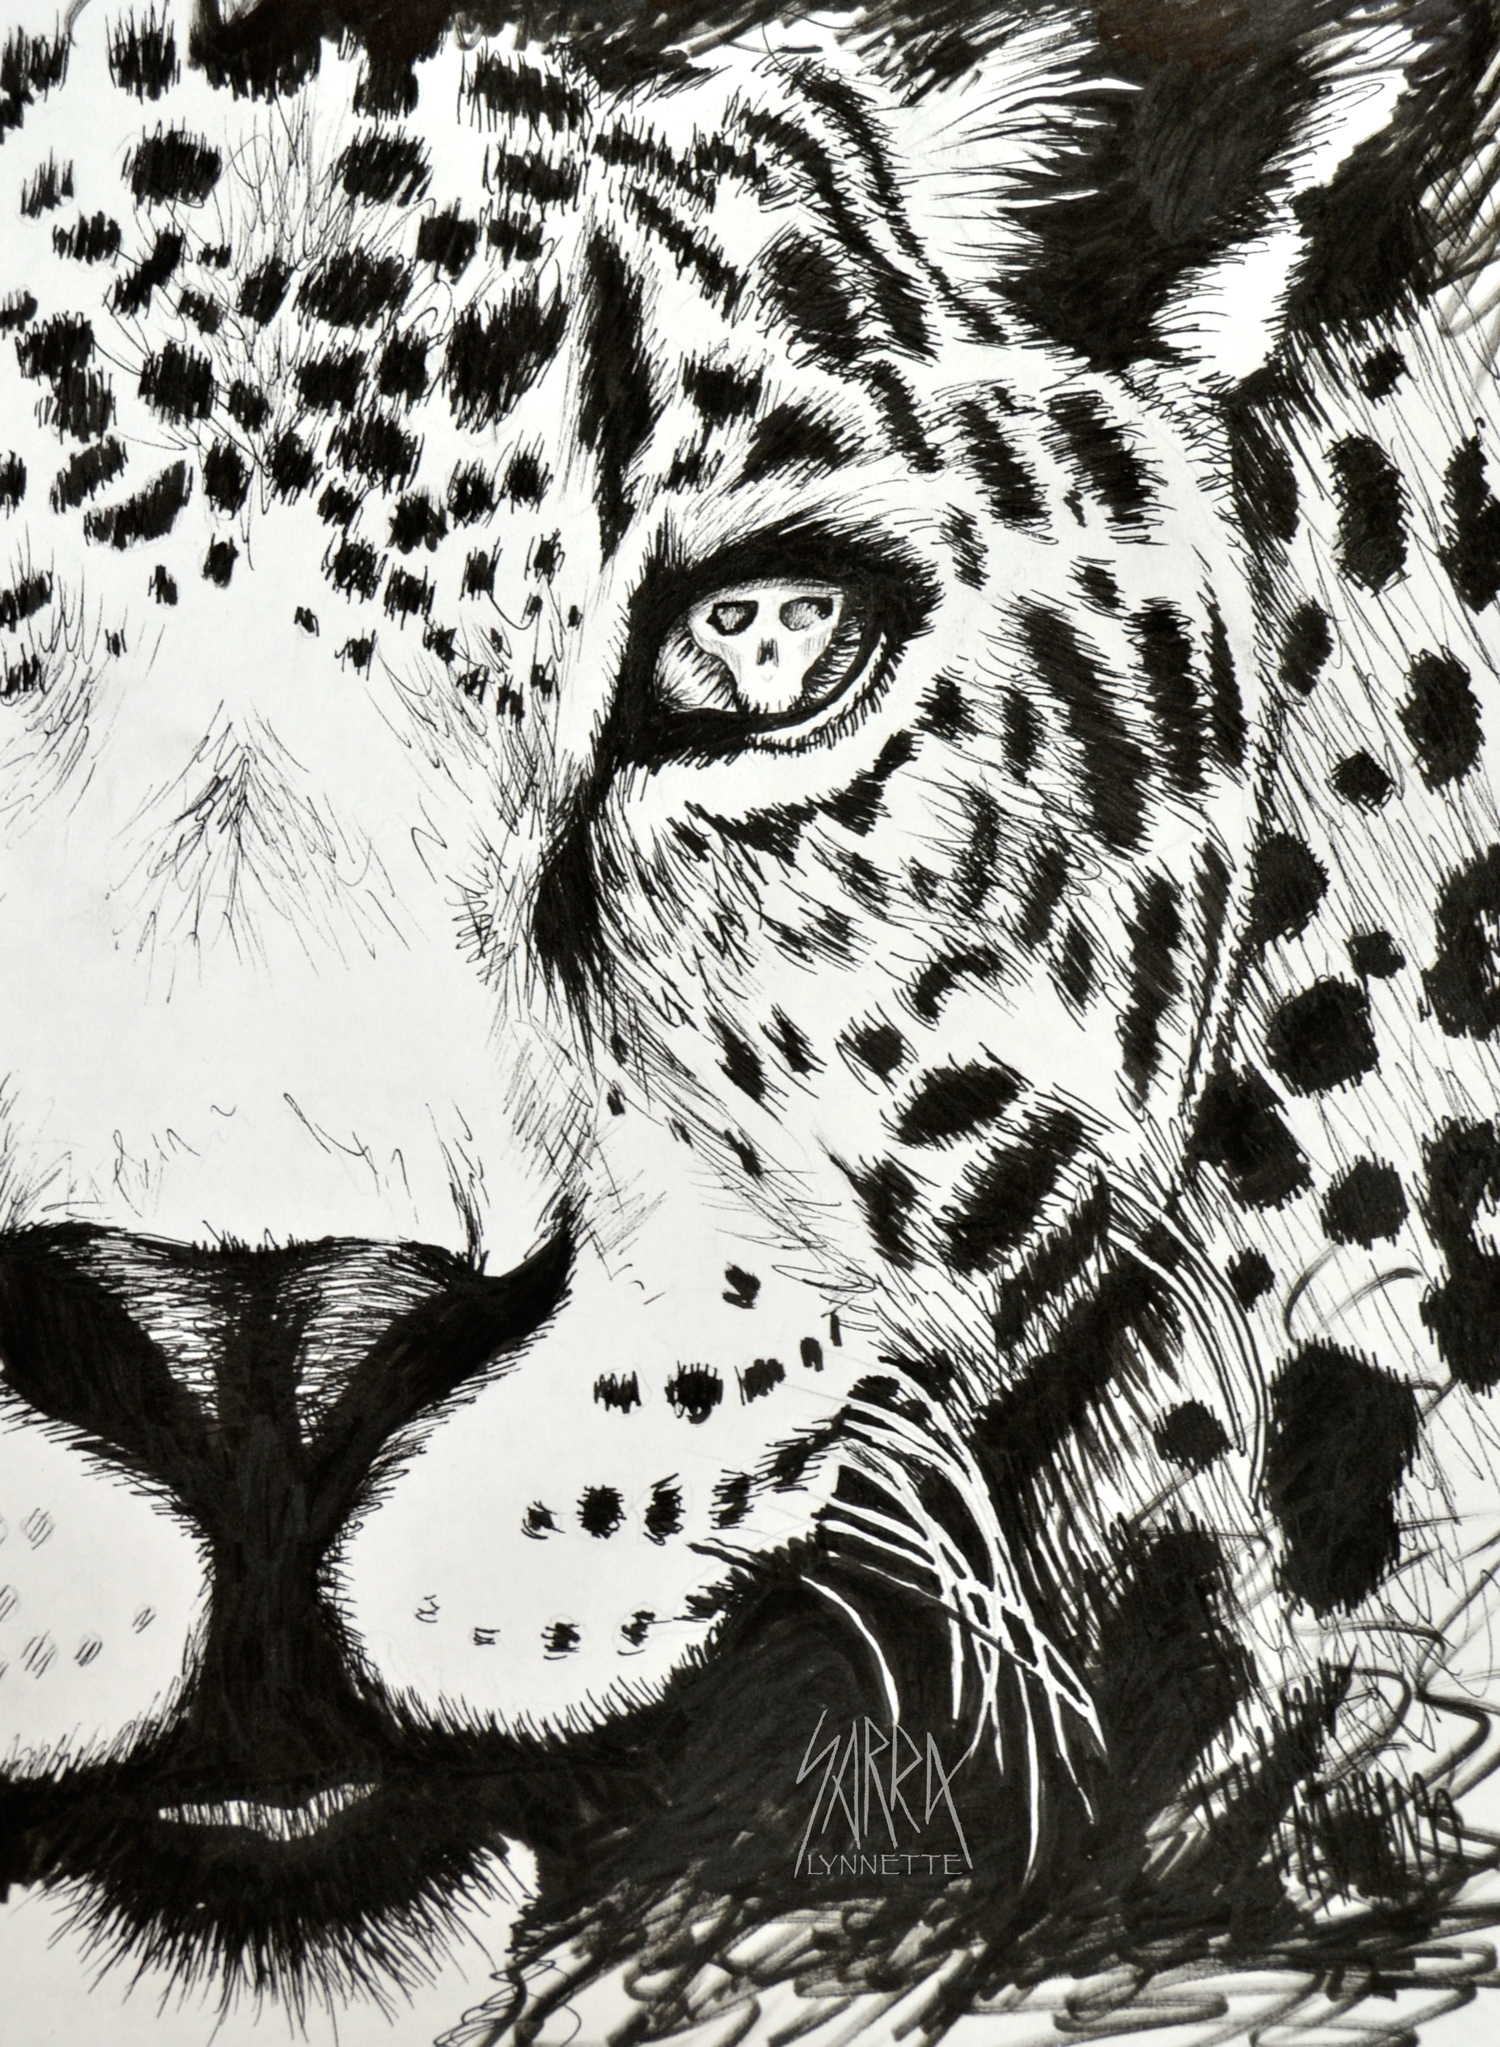 Drawn jaguar skull With skull Black drawing drawing